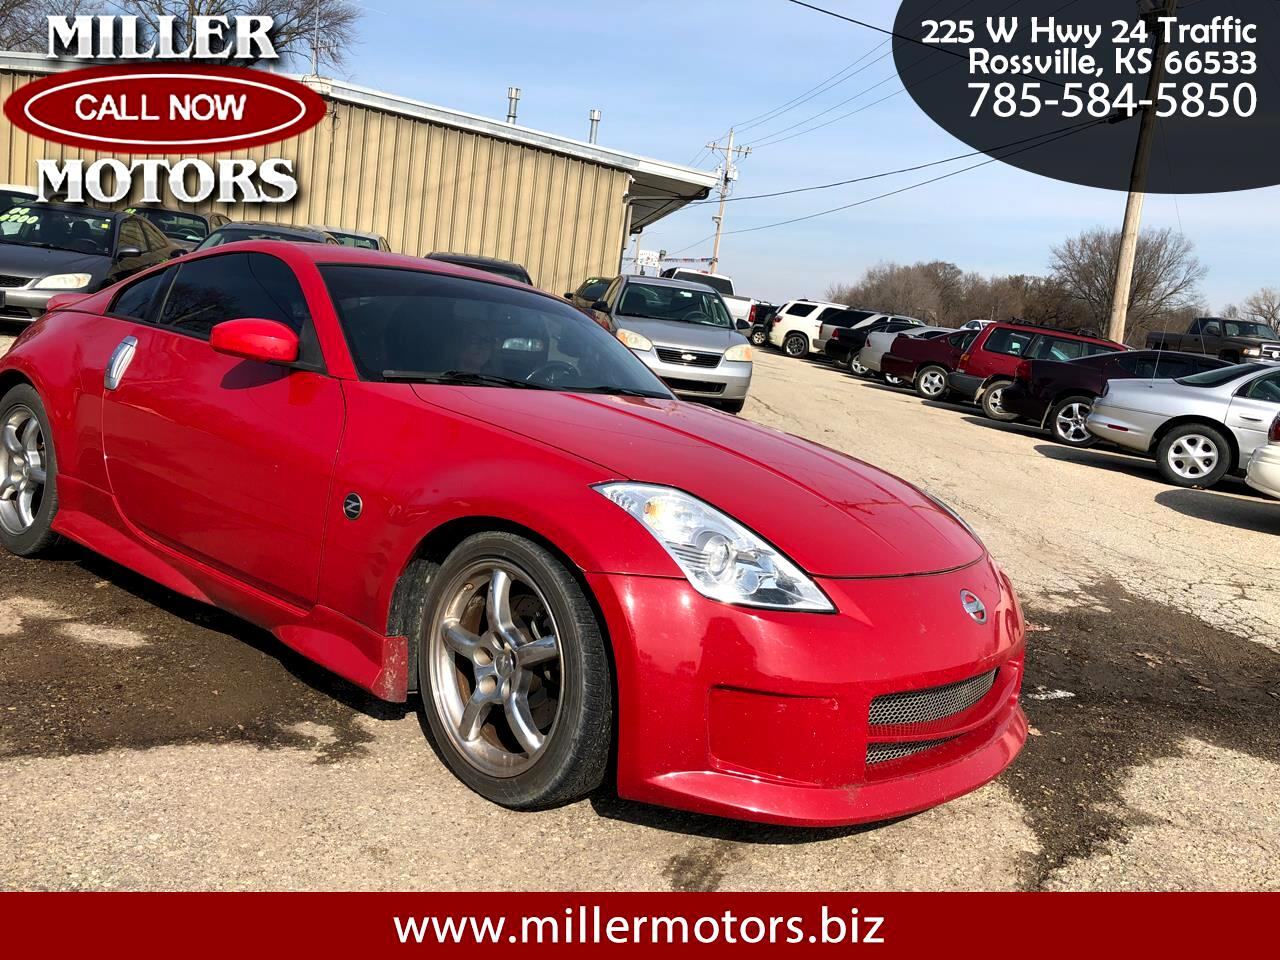 2006 Nissan 350Z 2dr Cpe Enthusiast Manual